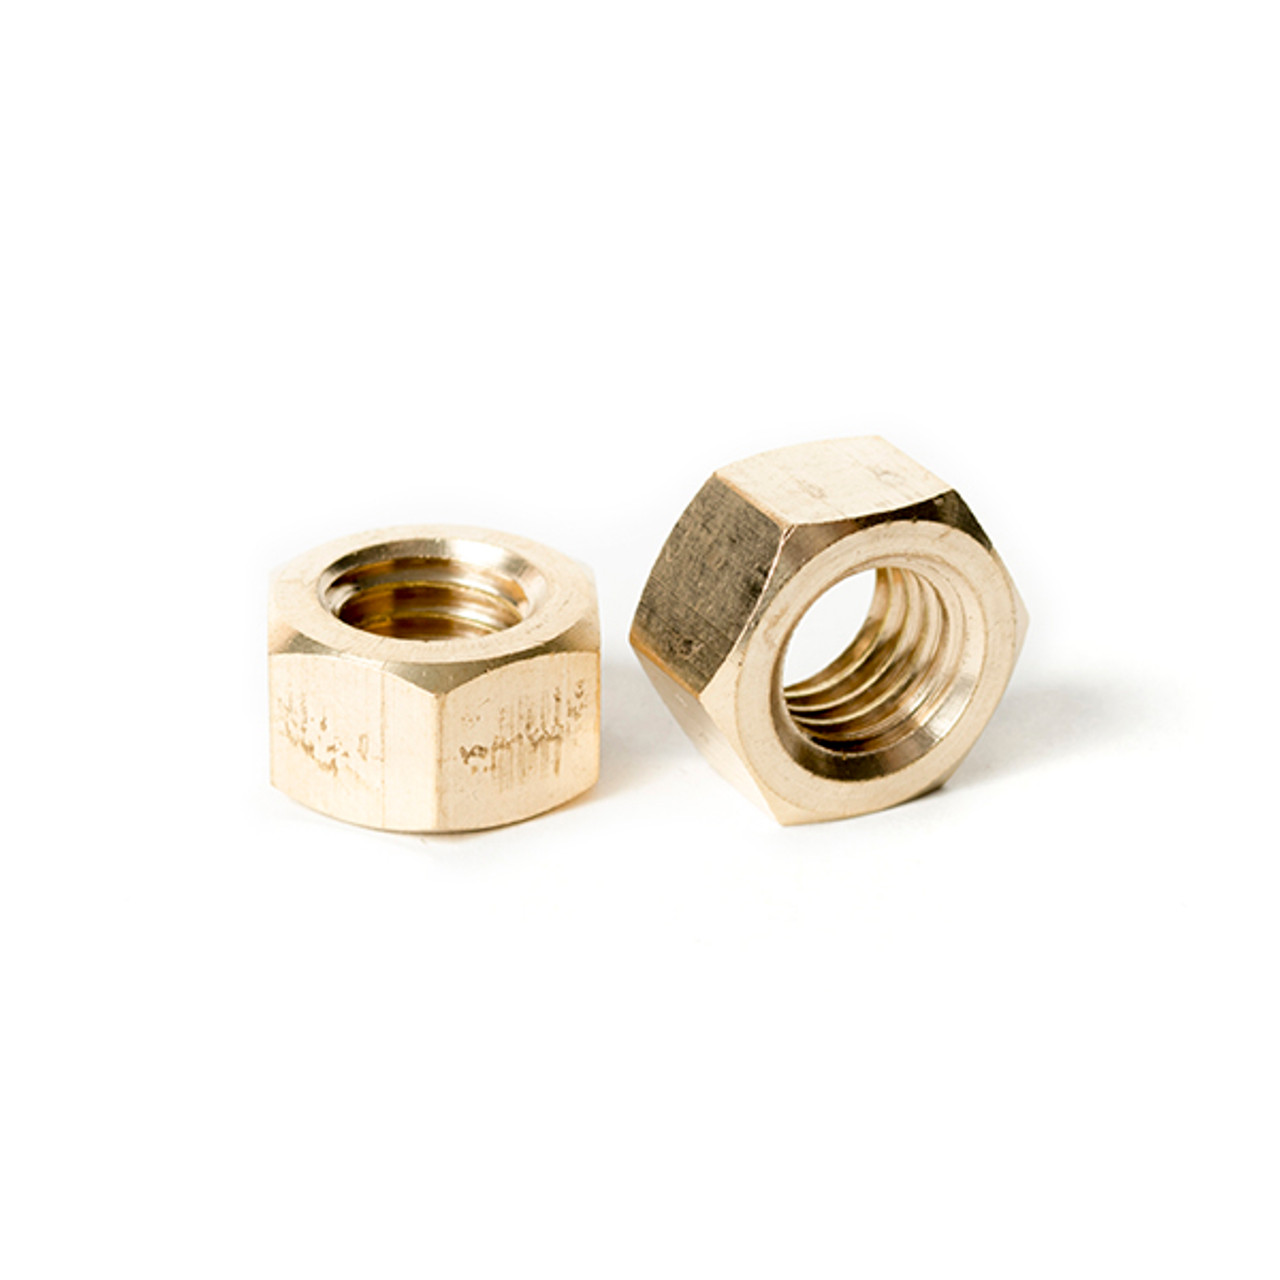 Stainless Steel Fine thread thin jam half height Hex Nuts 7//16-20 Qty 25